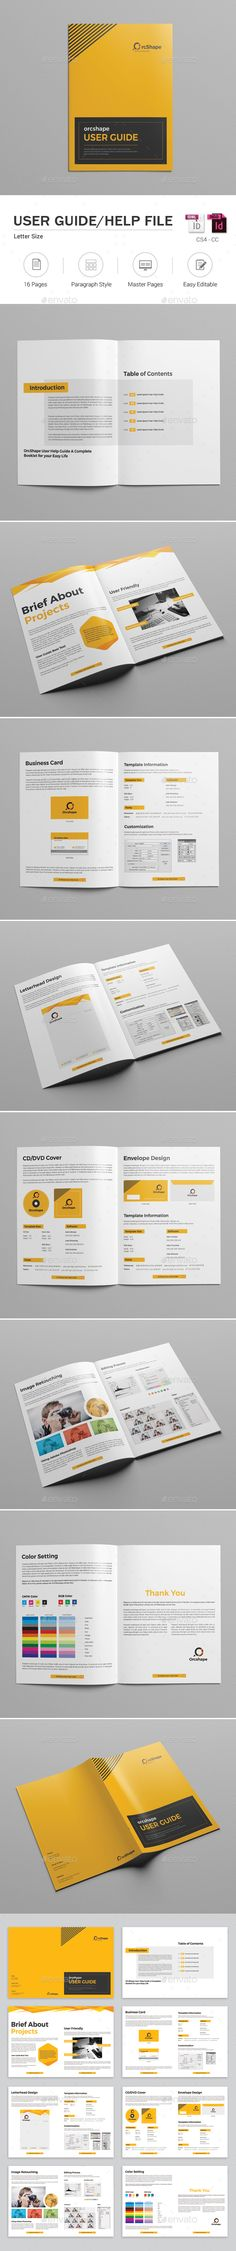 User Guide Brochure Template InDesign INDD